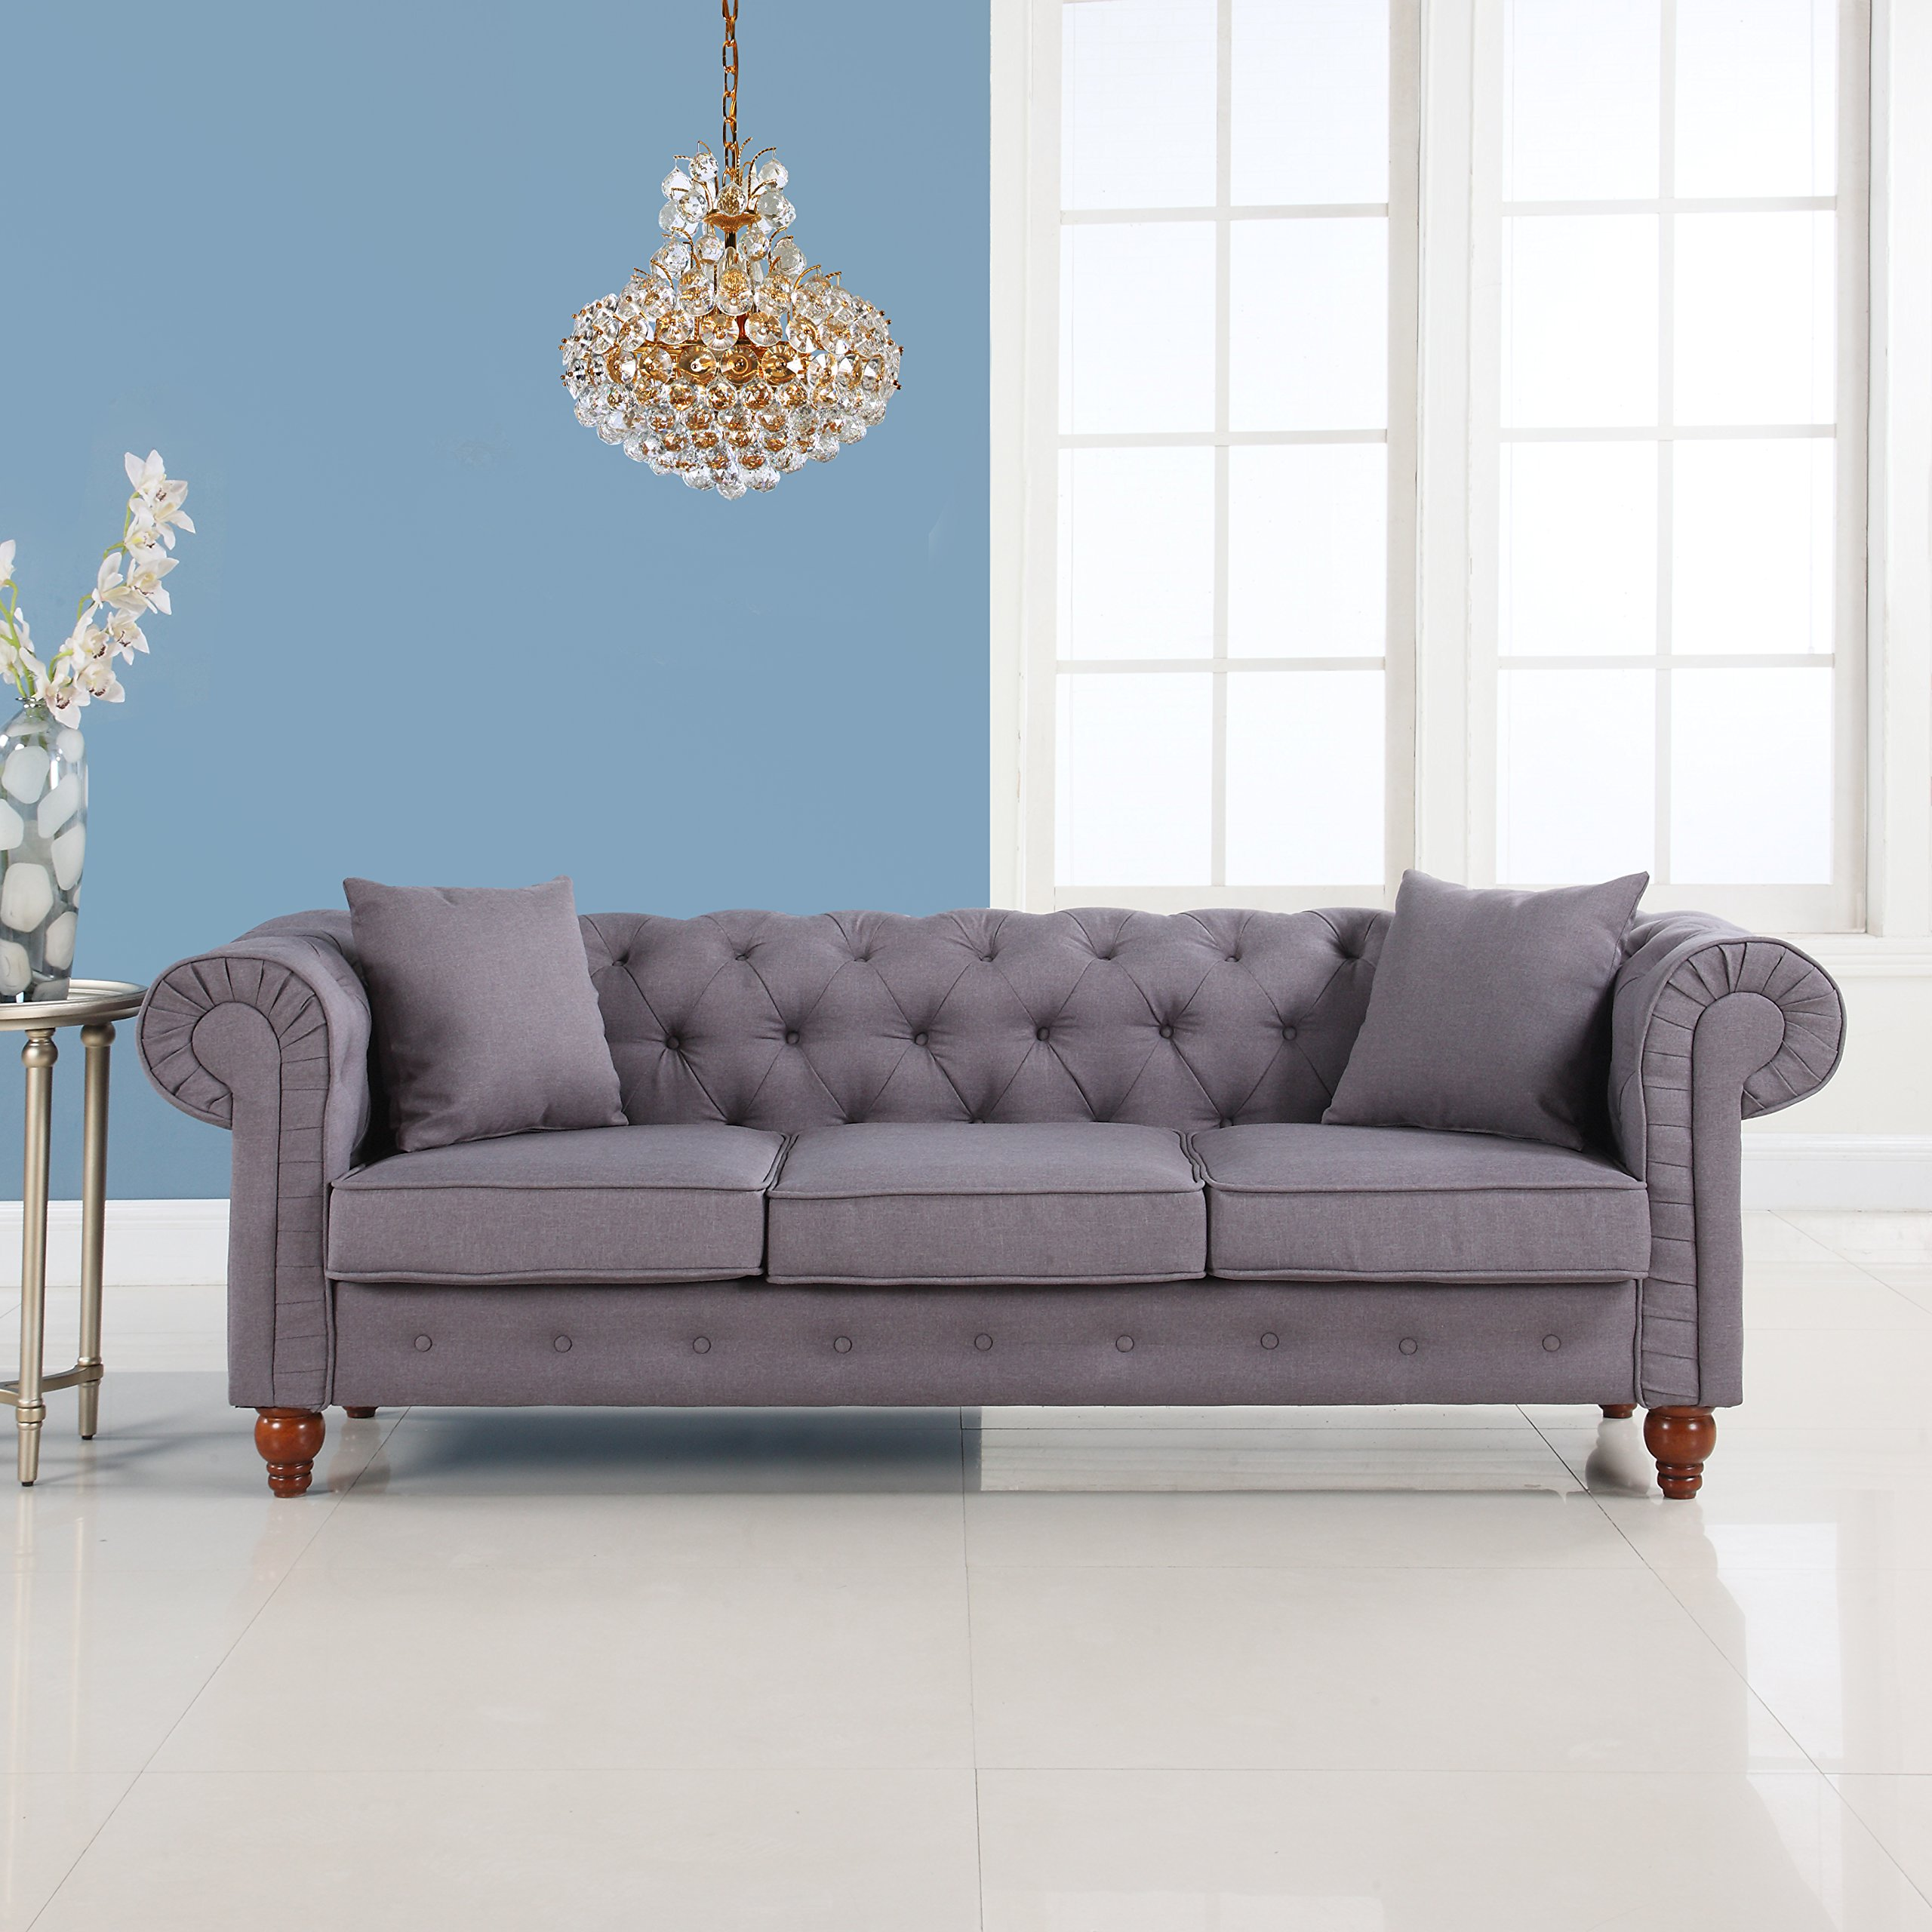 Chesterfield Sofa Online Uk Cheap Fabric Chesterfield Sofa Uk Find Fabric Chesterfield Sofa